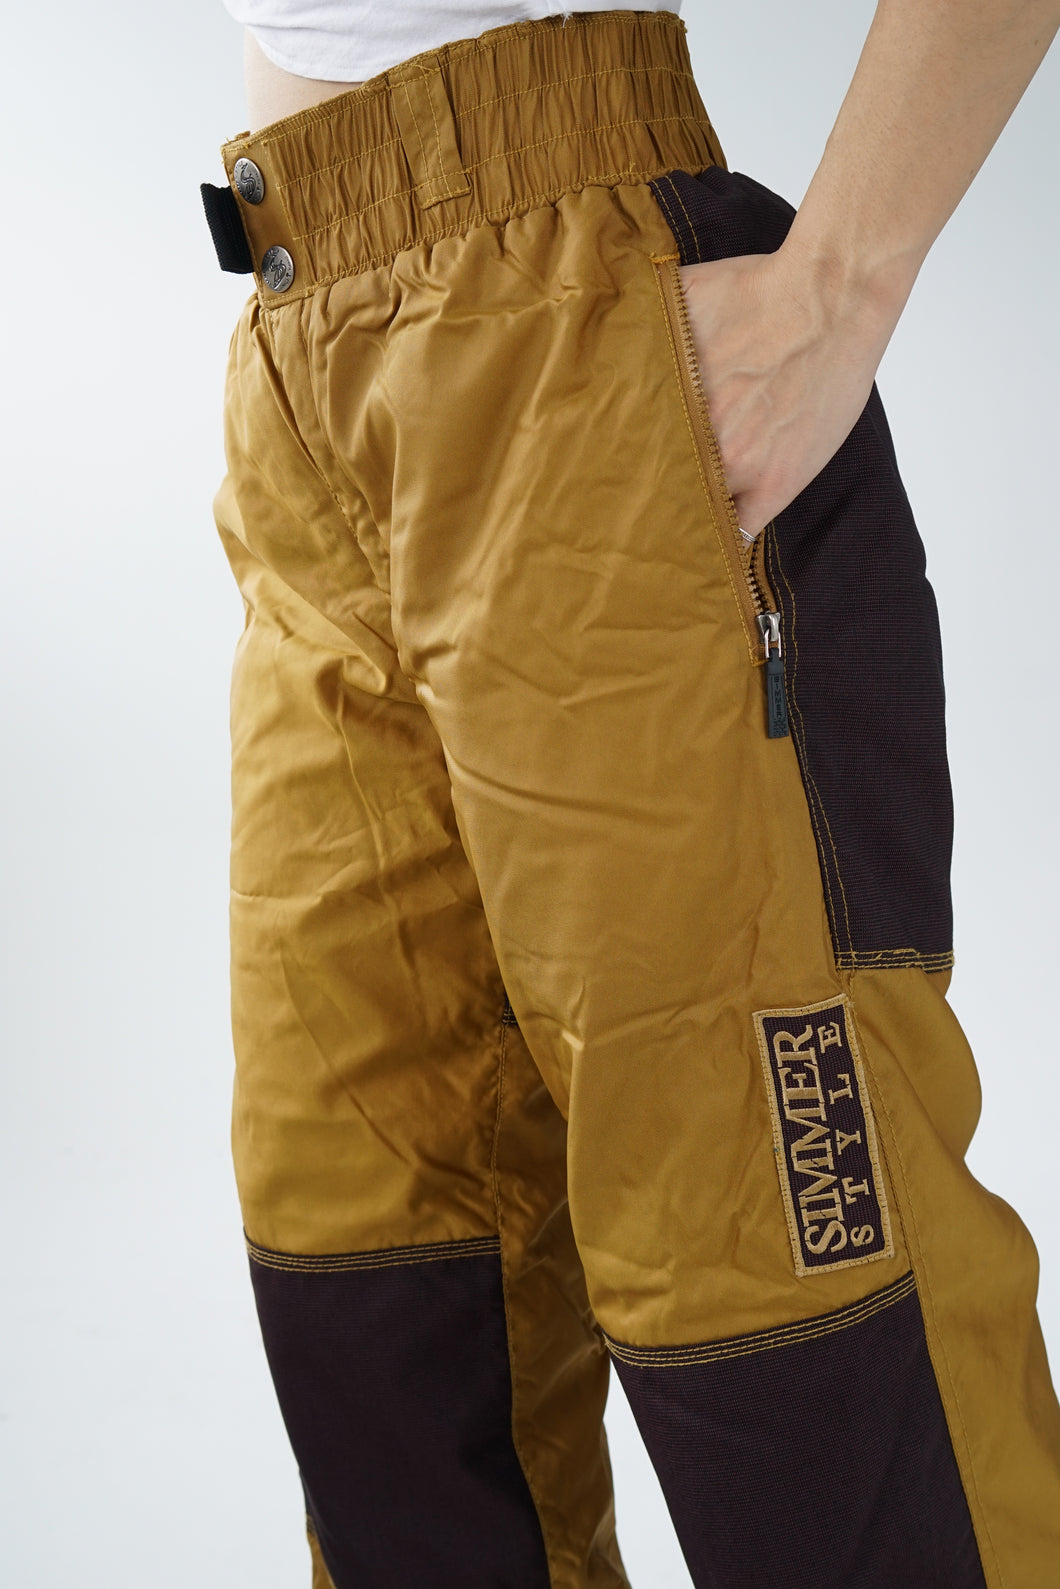 Vintage golden snow pants with patches unisex size S-M